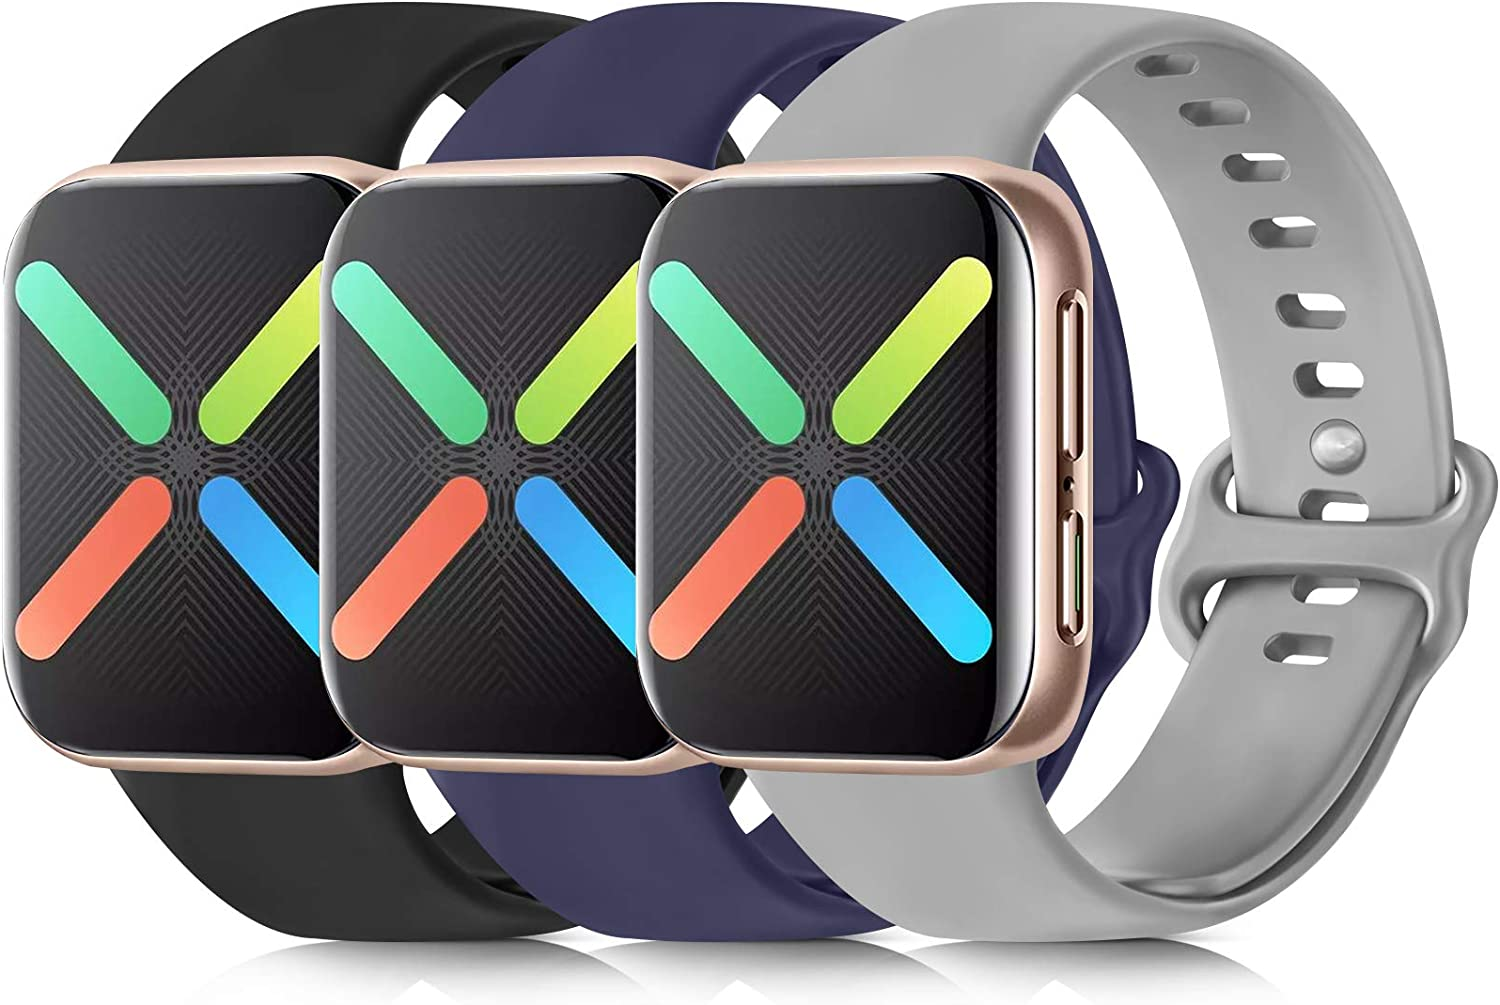 [3 Pack] Silicone Bands Compatible with Apple Watch Bands 38mm 40mm 42mm 44mm, Soft Wristbands Compatible with iWatch Bands (Black/Navy Blue/Gray, 42mm/44mm-M/L)